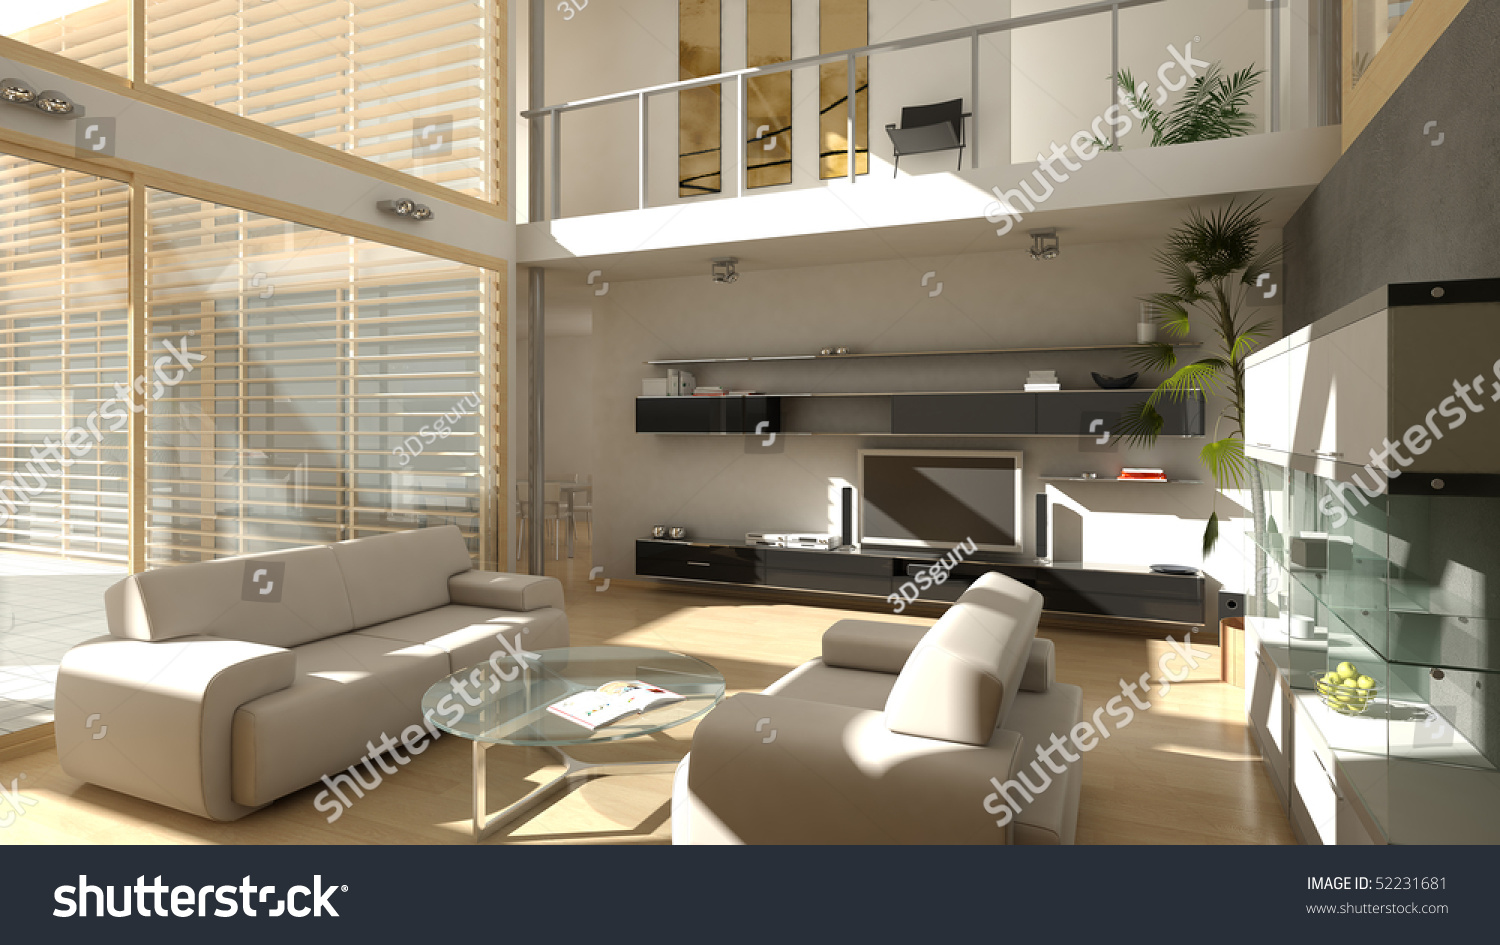 A High Quality, High Resolution Render Of A Modern Style Living Room Part 37